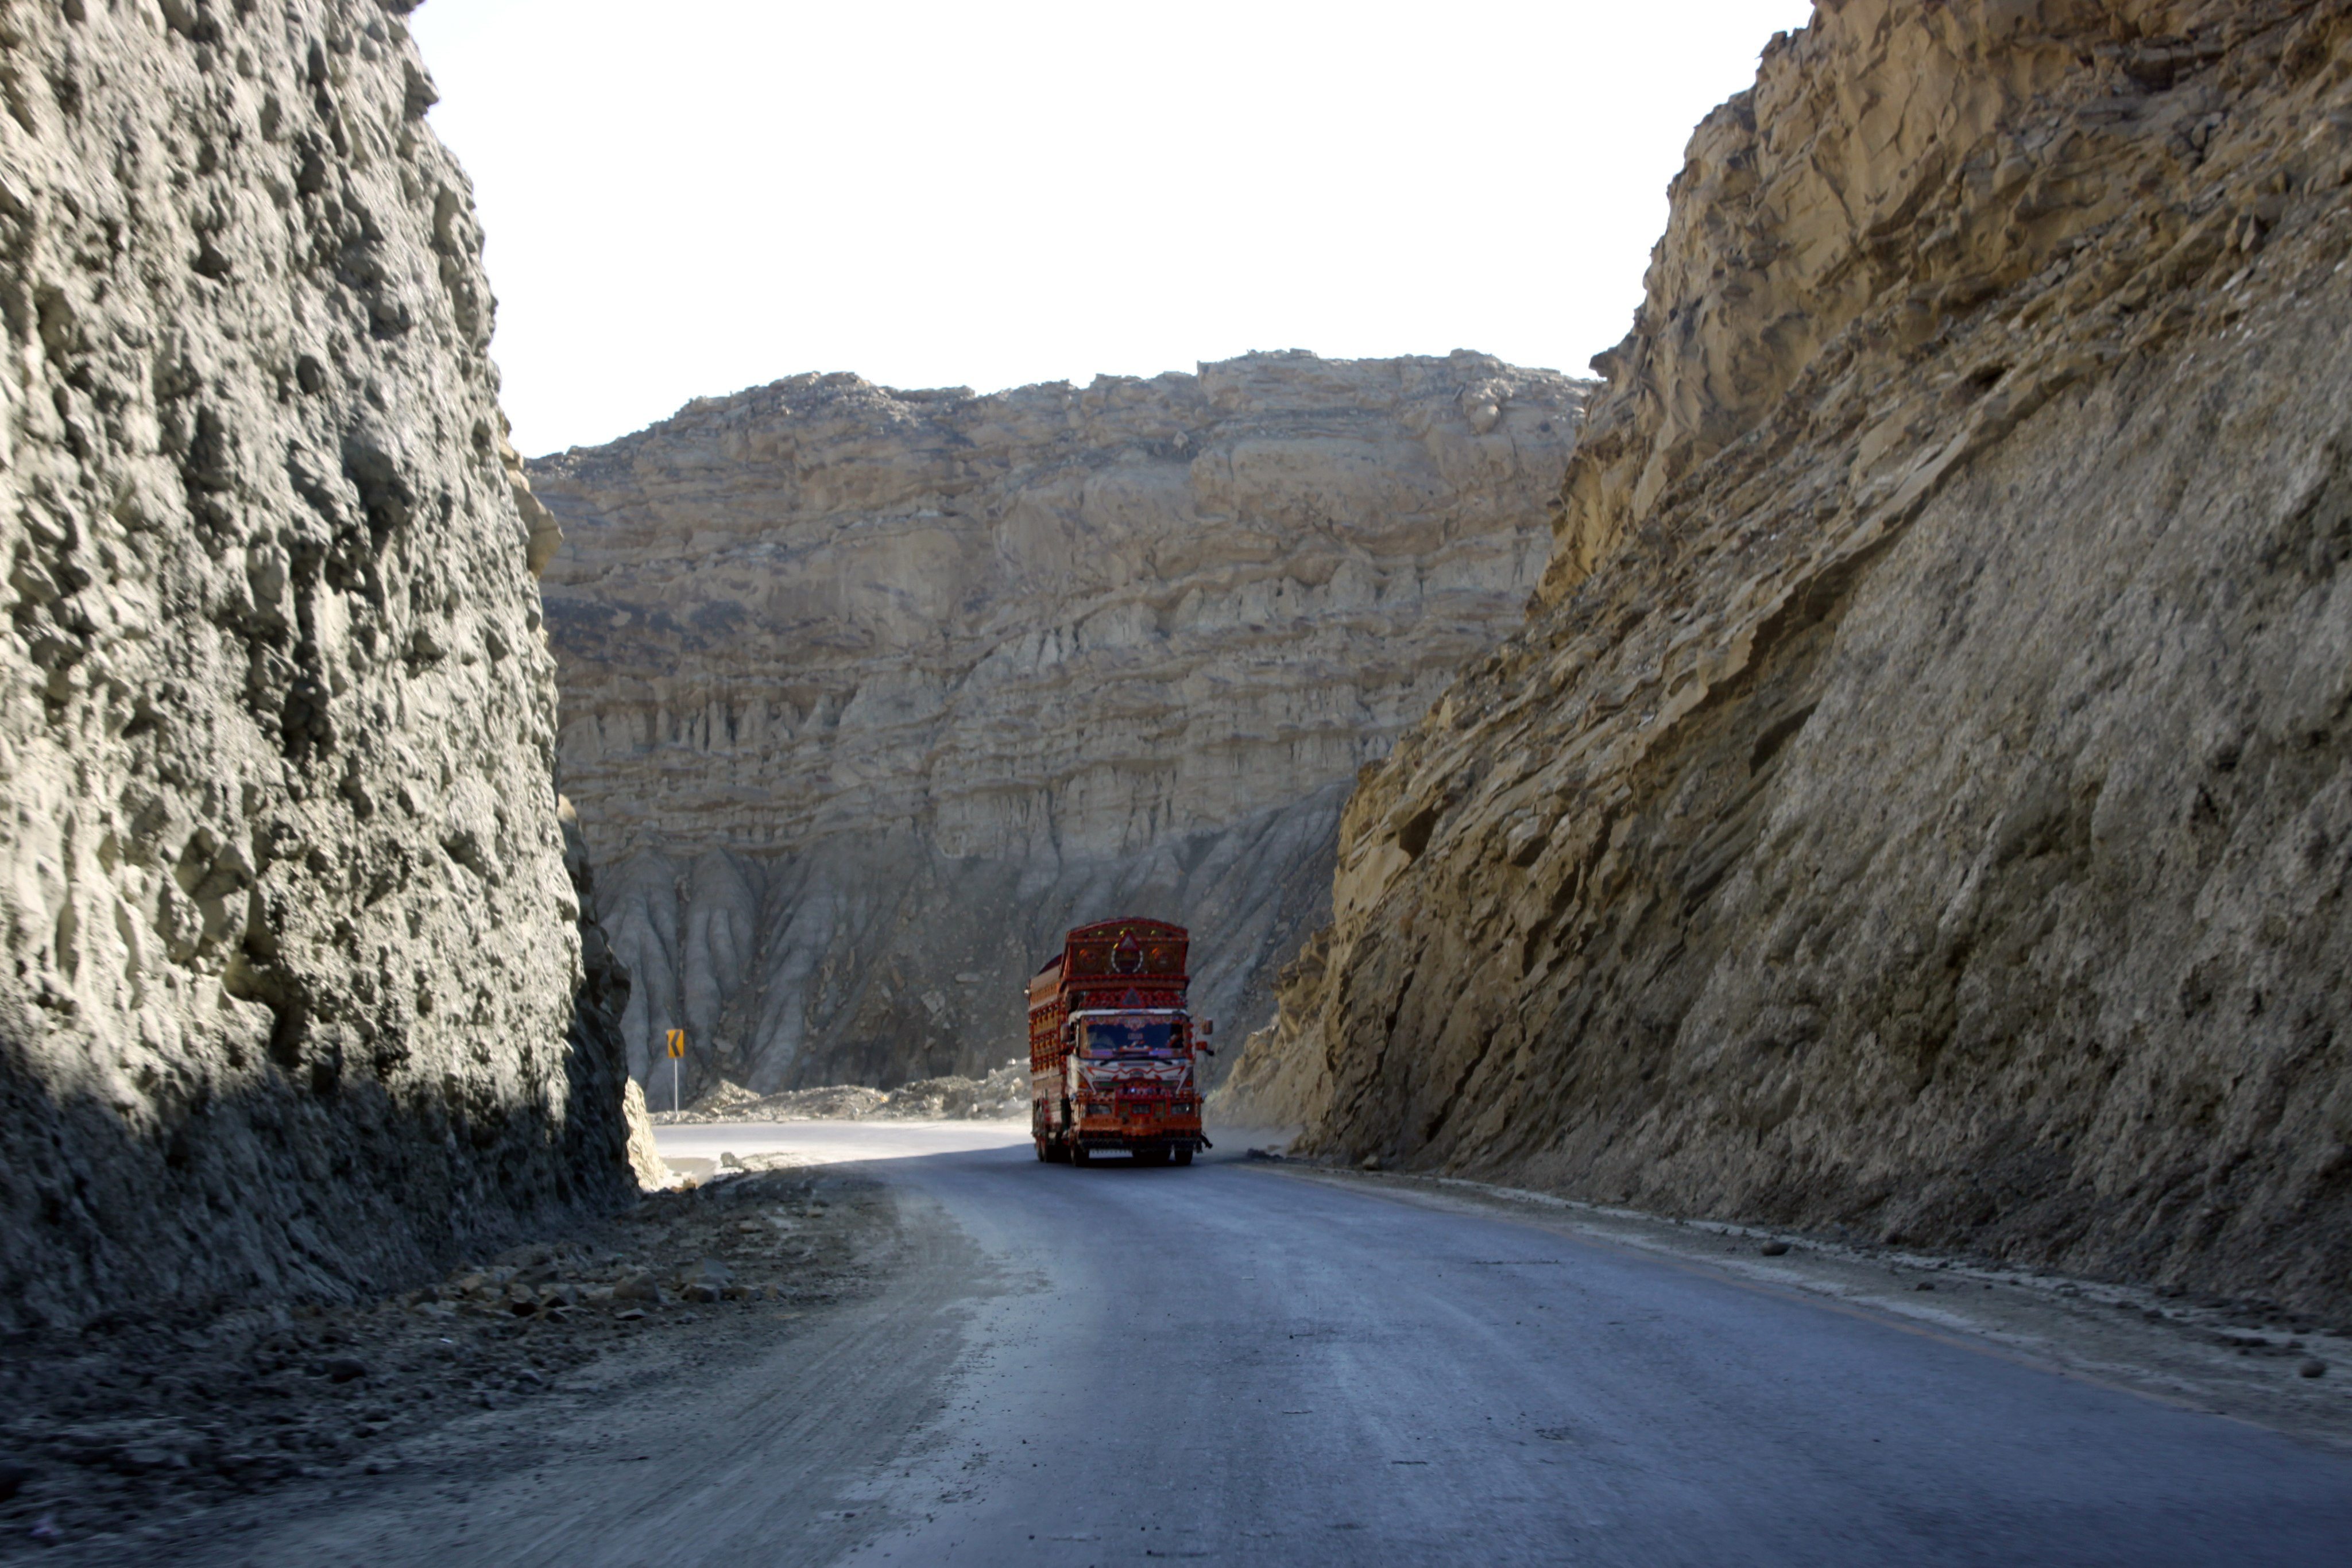 A truck travels on a highway with high cliffs on both sides.